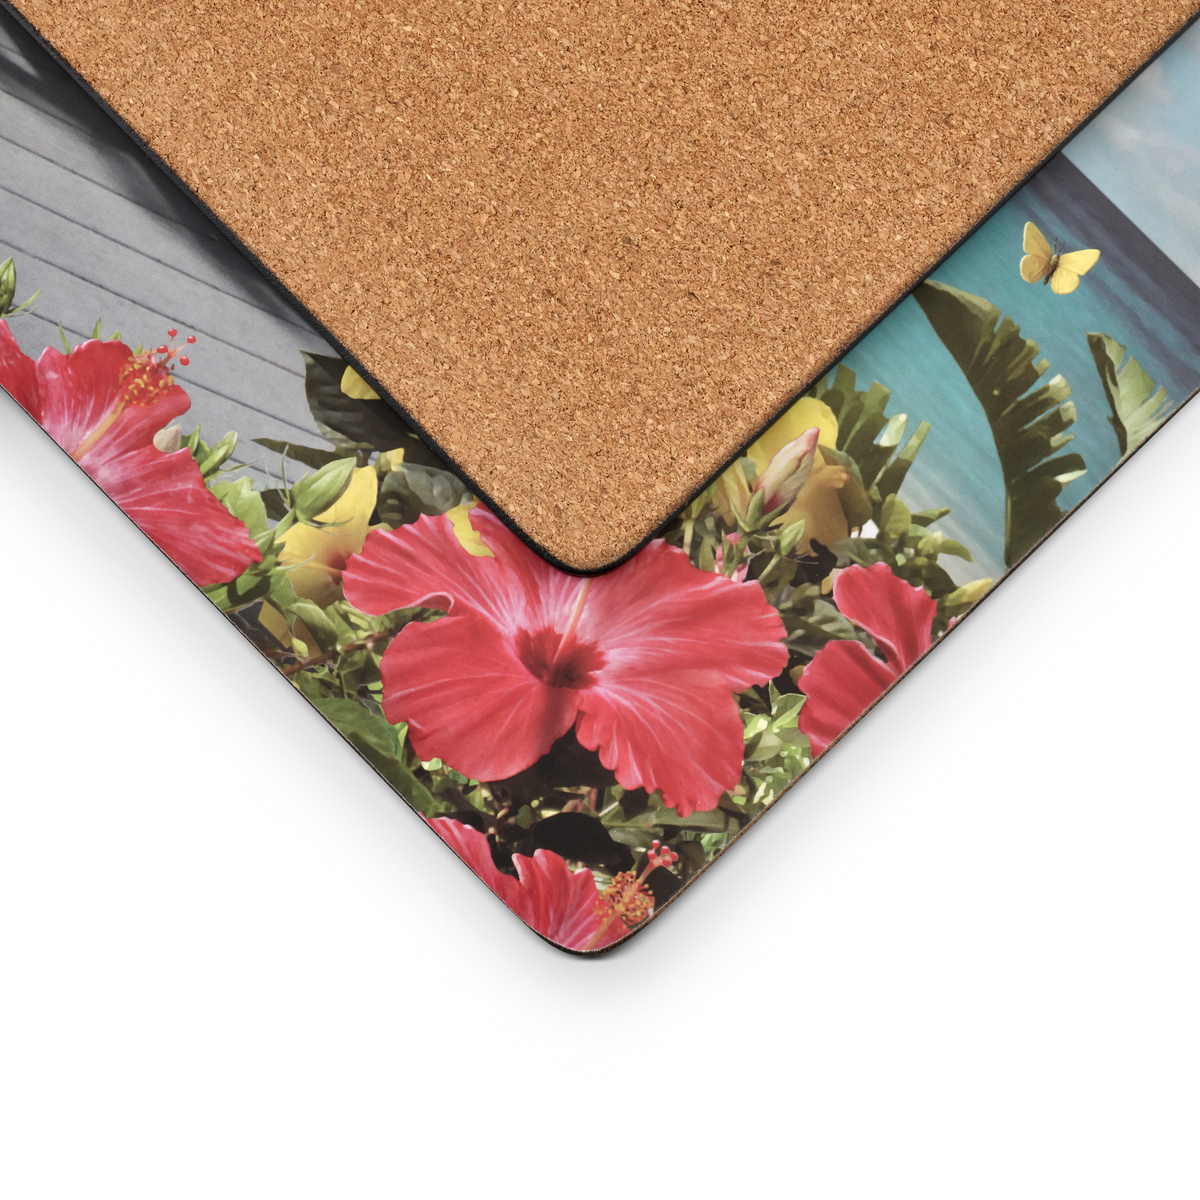 Pimpernel In The Sunshine Placemats Set of 4 image number 1